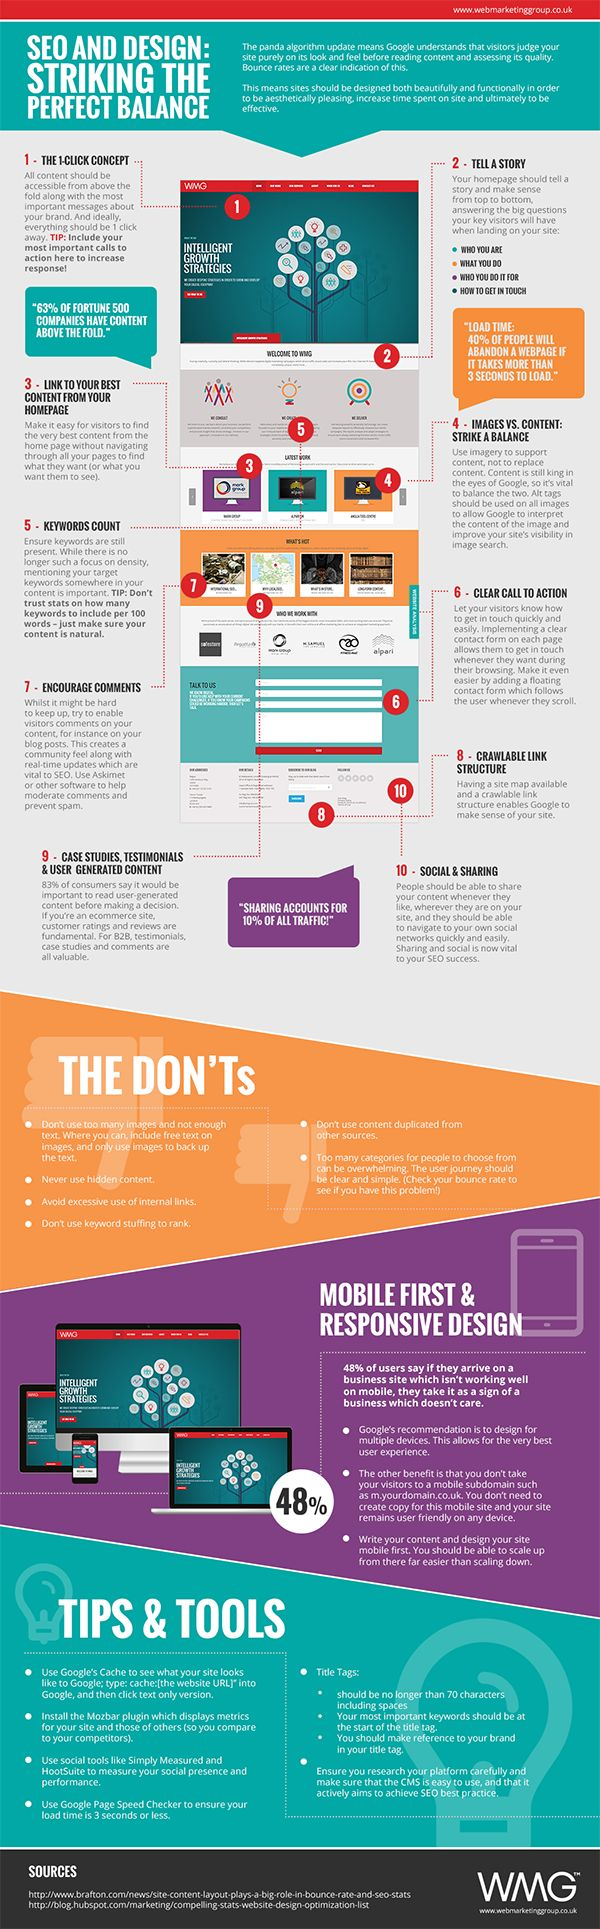 Why Your Badly Designed Website is Killing Your SEO